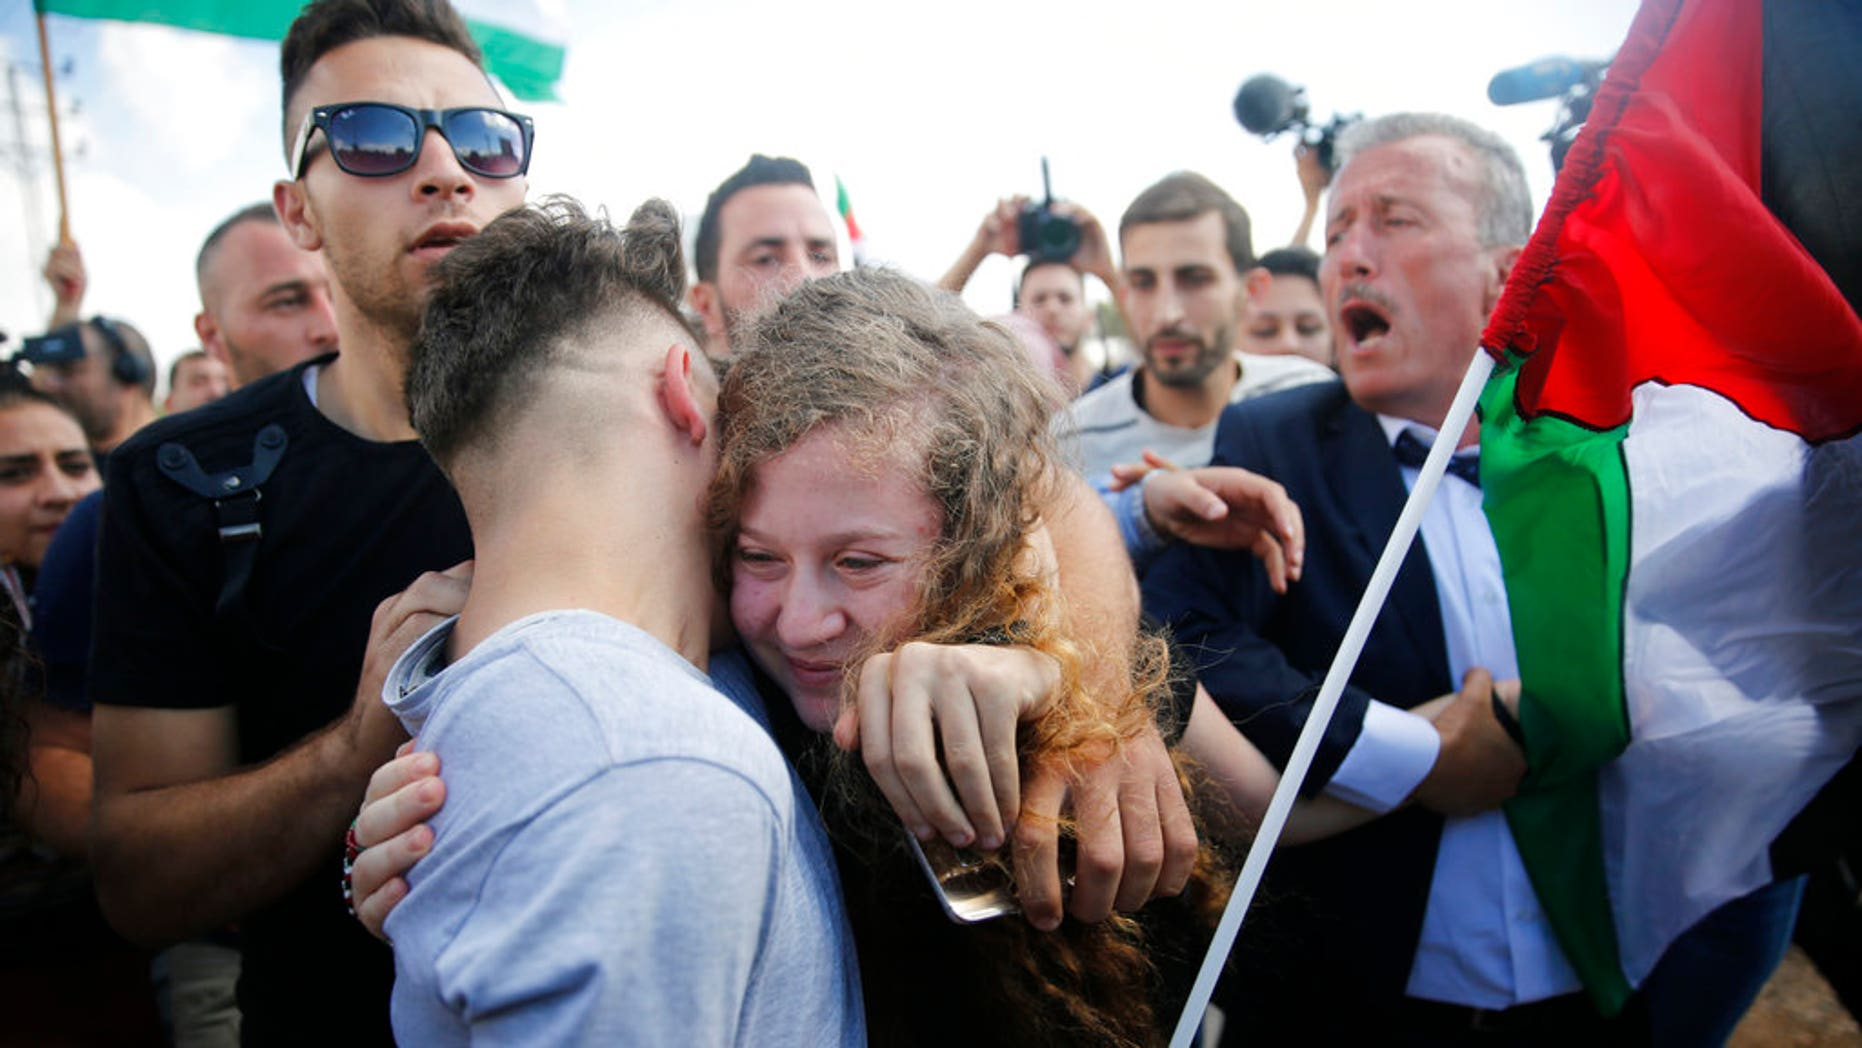 Ahed Tamimi is hugged after she was released by the Israel army in her village of Nebi Saleh in the West Bank Sunday, July 29, 2018. Palestinian protest icon Ahed Tamimi returned home to a hero's welcome in her West Bank village on Sunday after Israel released the 17-year-old from prison at the end of her eight-month sentence for slapping and kicking Israeli soldiers.